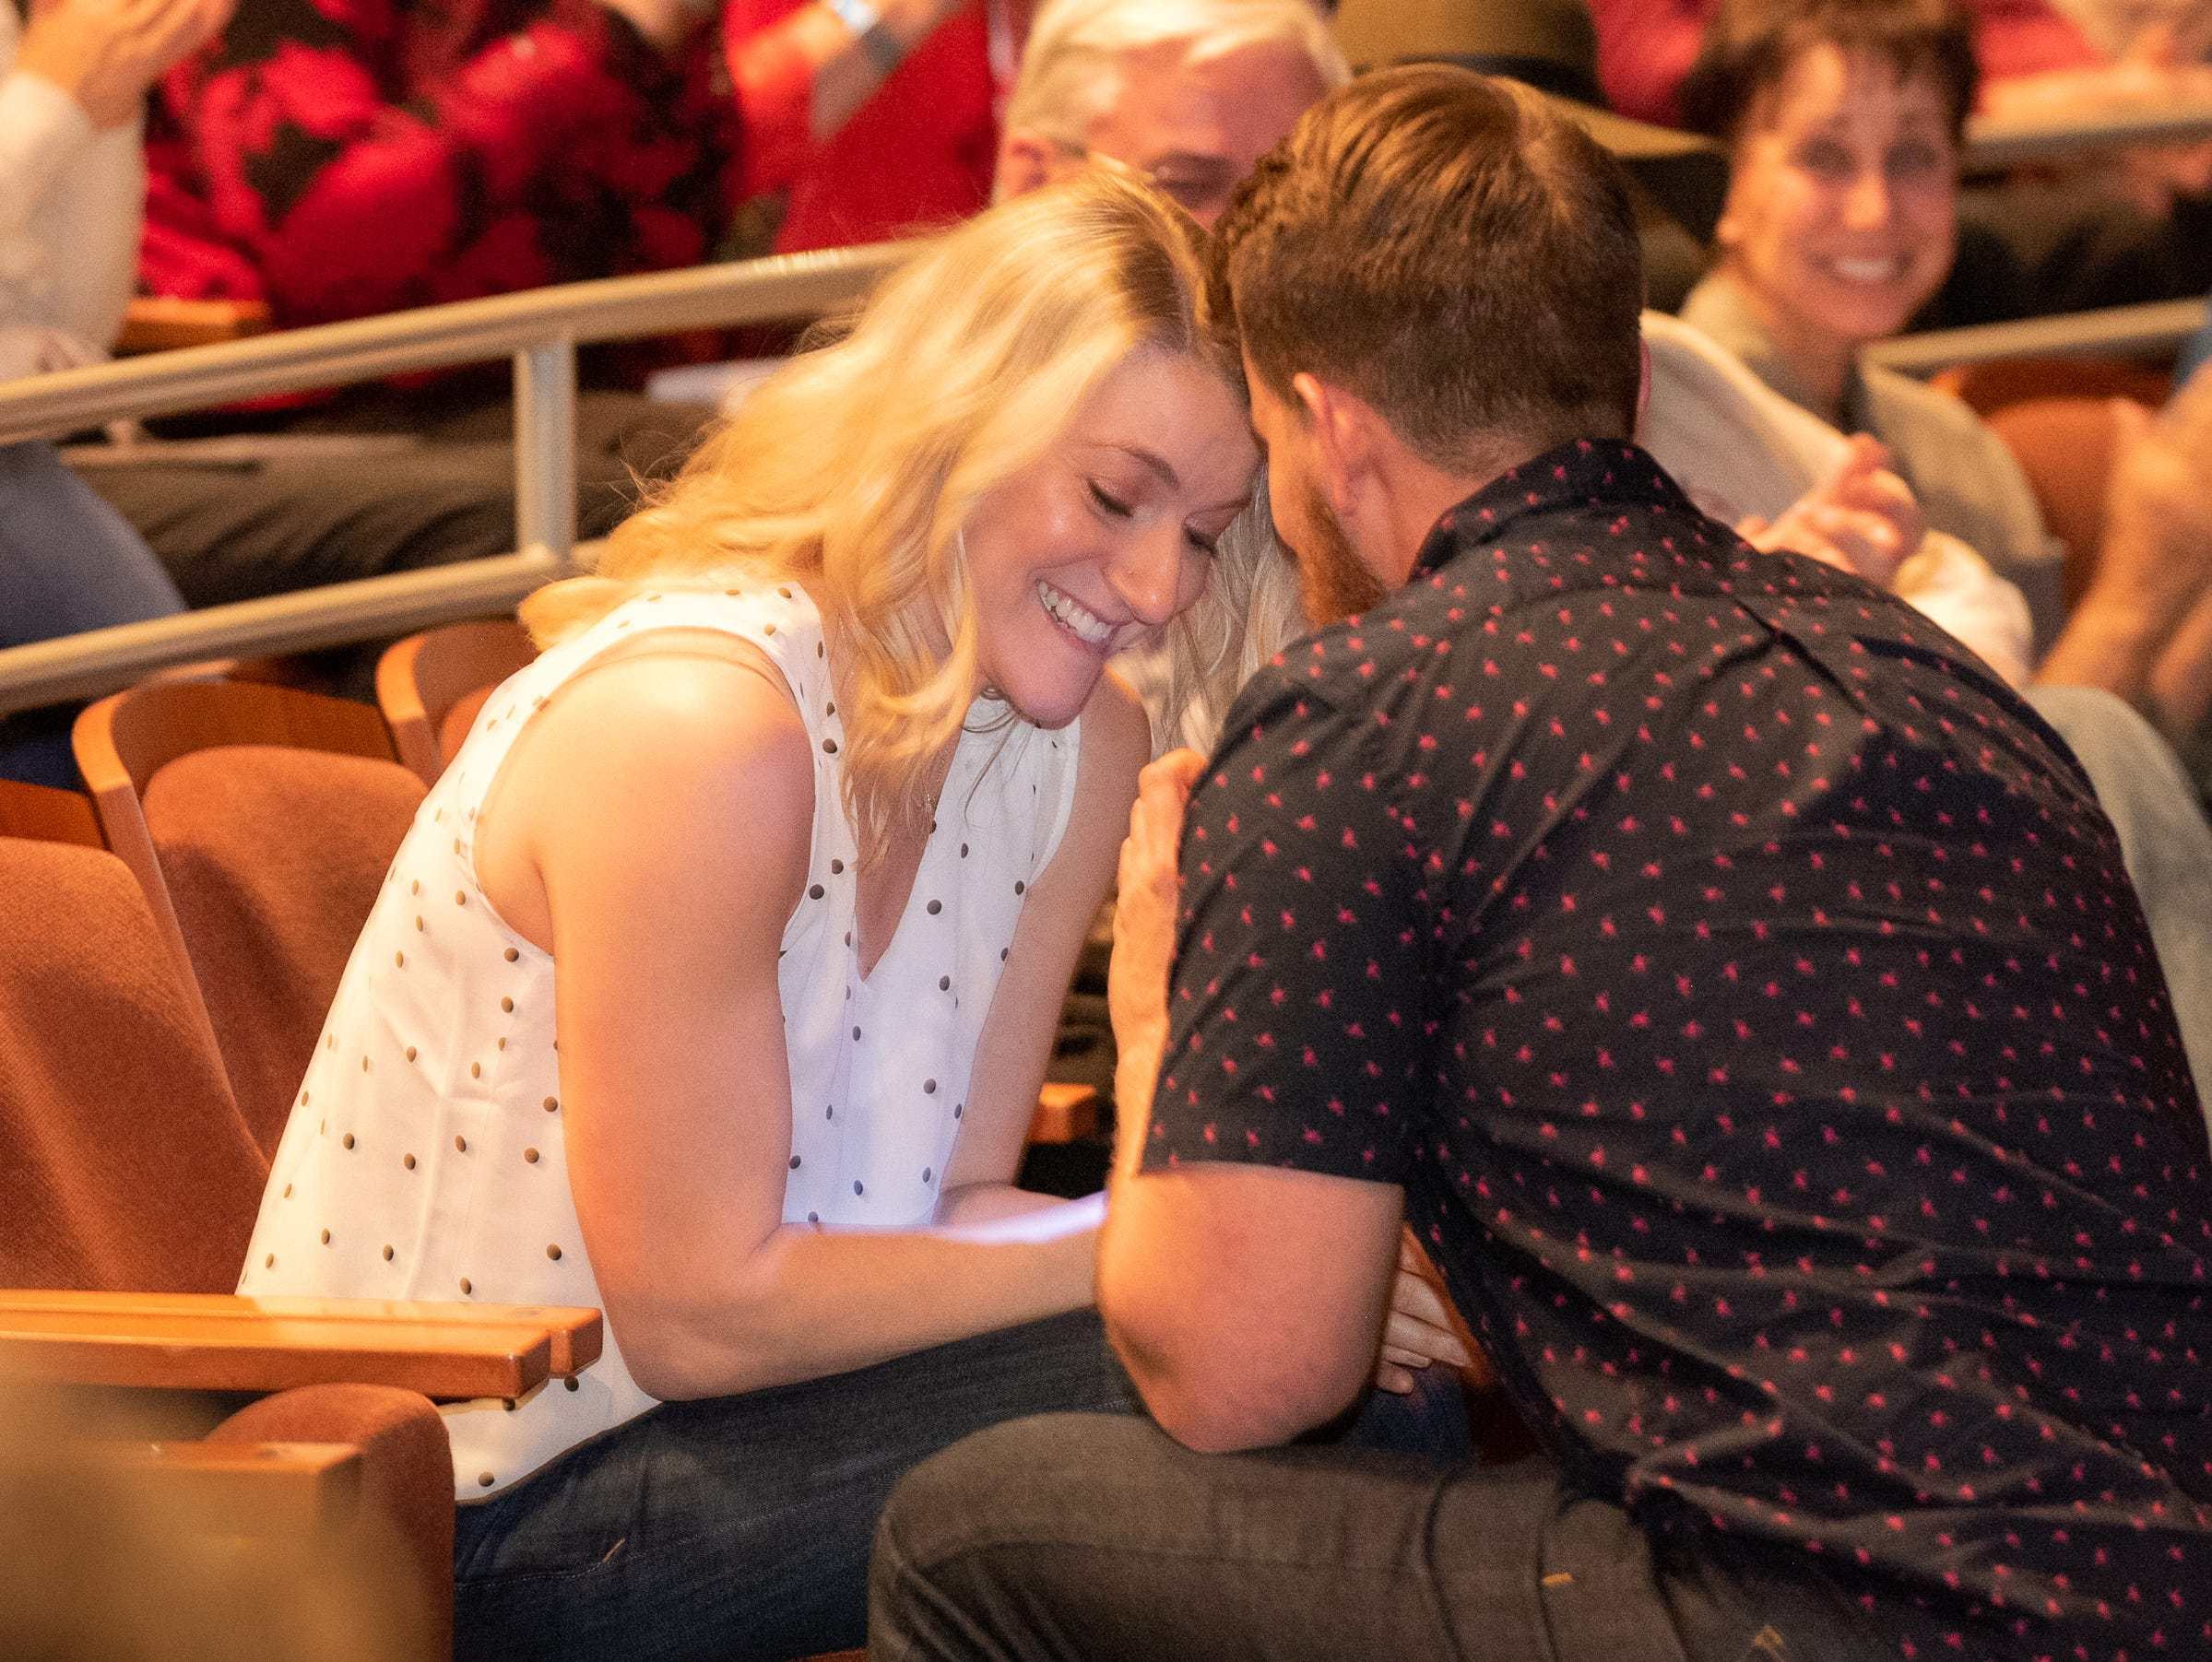 Josh Shore ends his tale by proposing to his now fiancé during The Storytellers Project presents Romance - or Not at the Scottsdale Center for Performing Arts on Wednesday, Feb. 13, 2019.